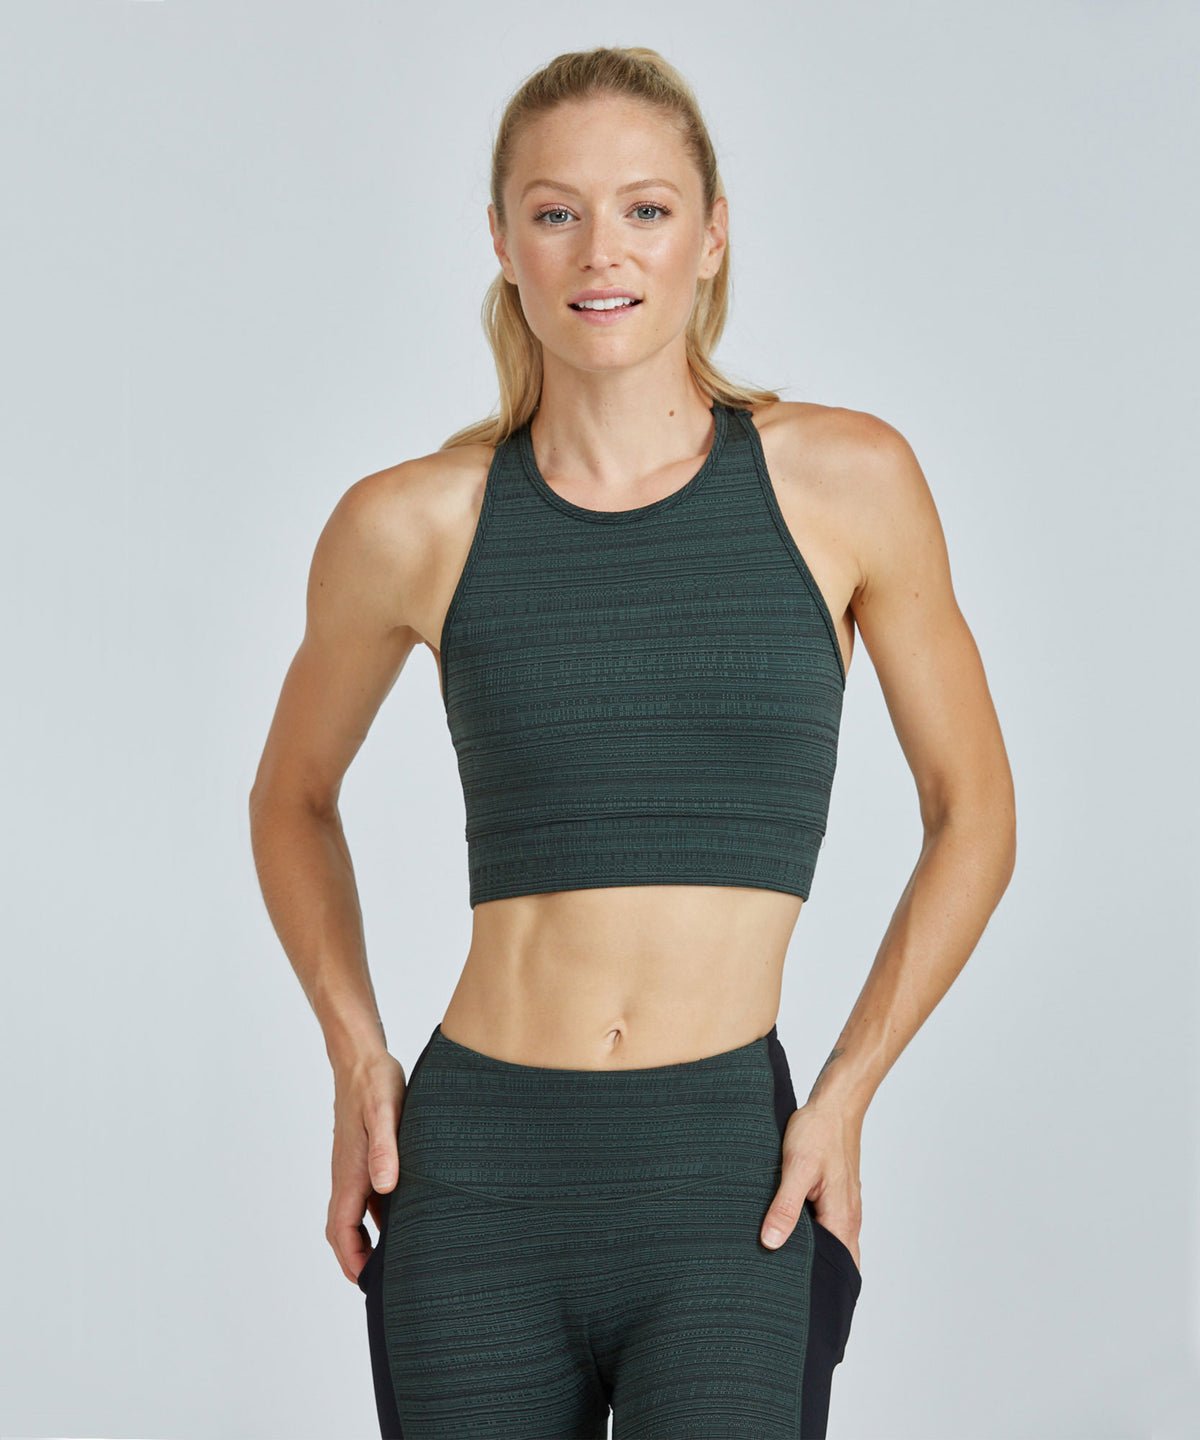 Crop Bra Top - Green Jacquard Green Jacquard Crop Bra Top - Women's Sports Bra by PRISMSPORT